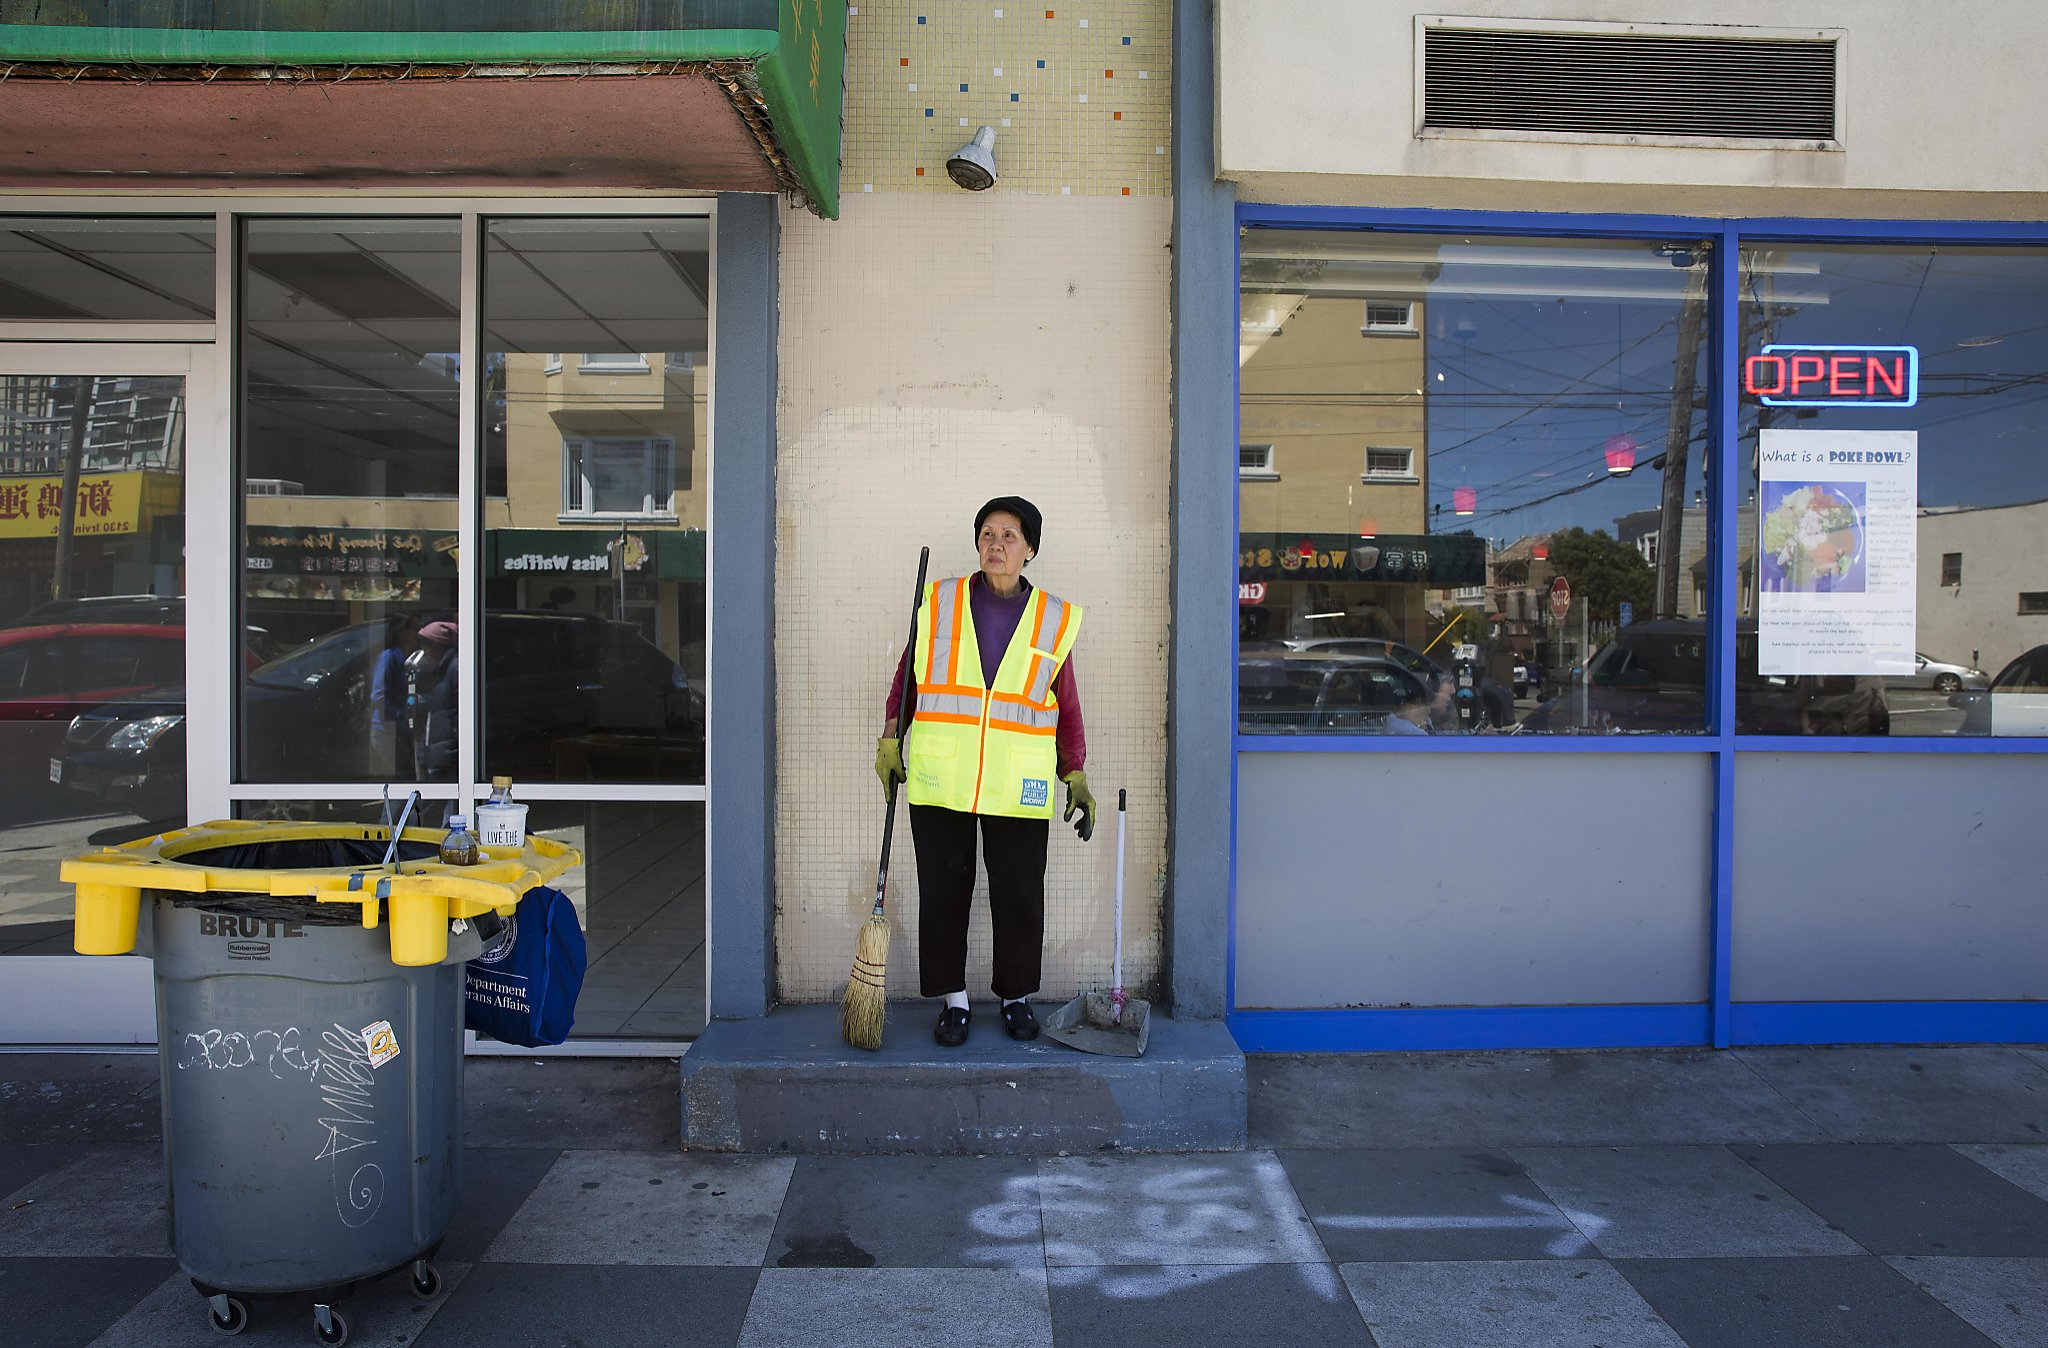 S.F. street cleaner, 67, is 'Grandma' at home and on the job ... on oakland street map, speed street map, ma street map, broadway street map, bay area street map, oak street map, portland street map, chicago street map, chestnut street map, nyc street map, ga street map, fl street map, miami street map, la street map, seattle street map, london street map, dc street map, ac street map, boston street map, funchal street map,